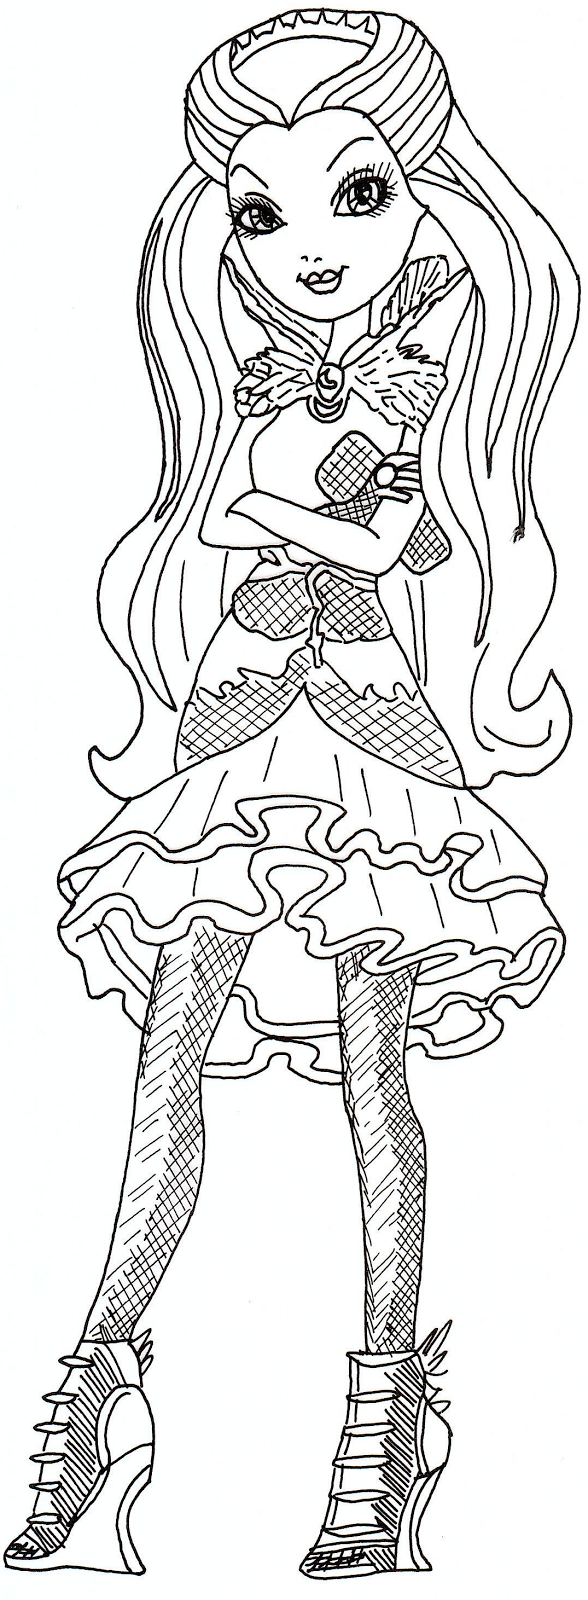 All about ever after high dolls june 2013 for Raven coloring pages